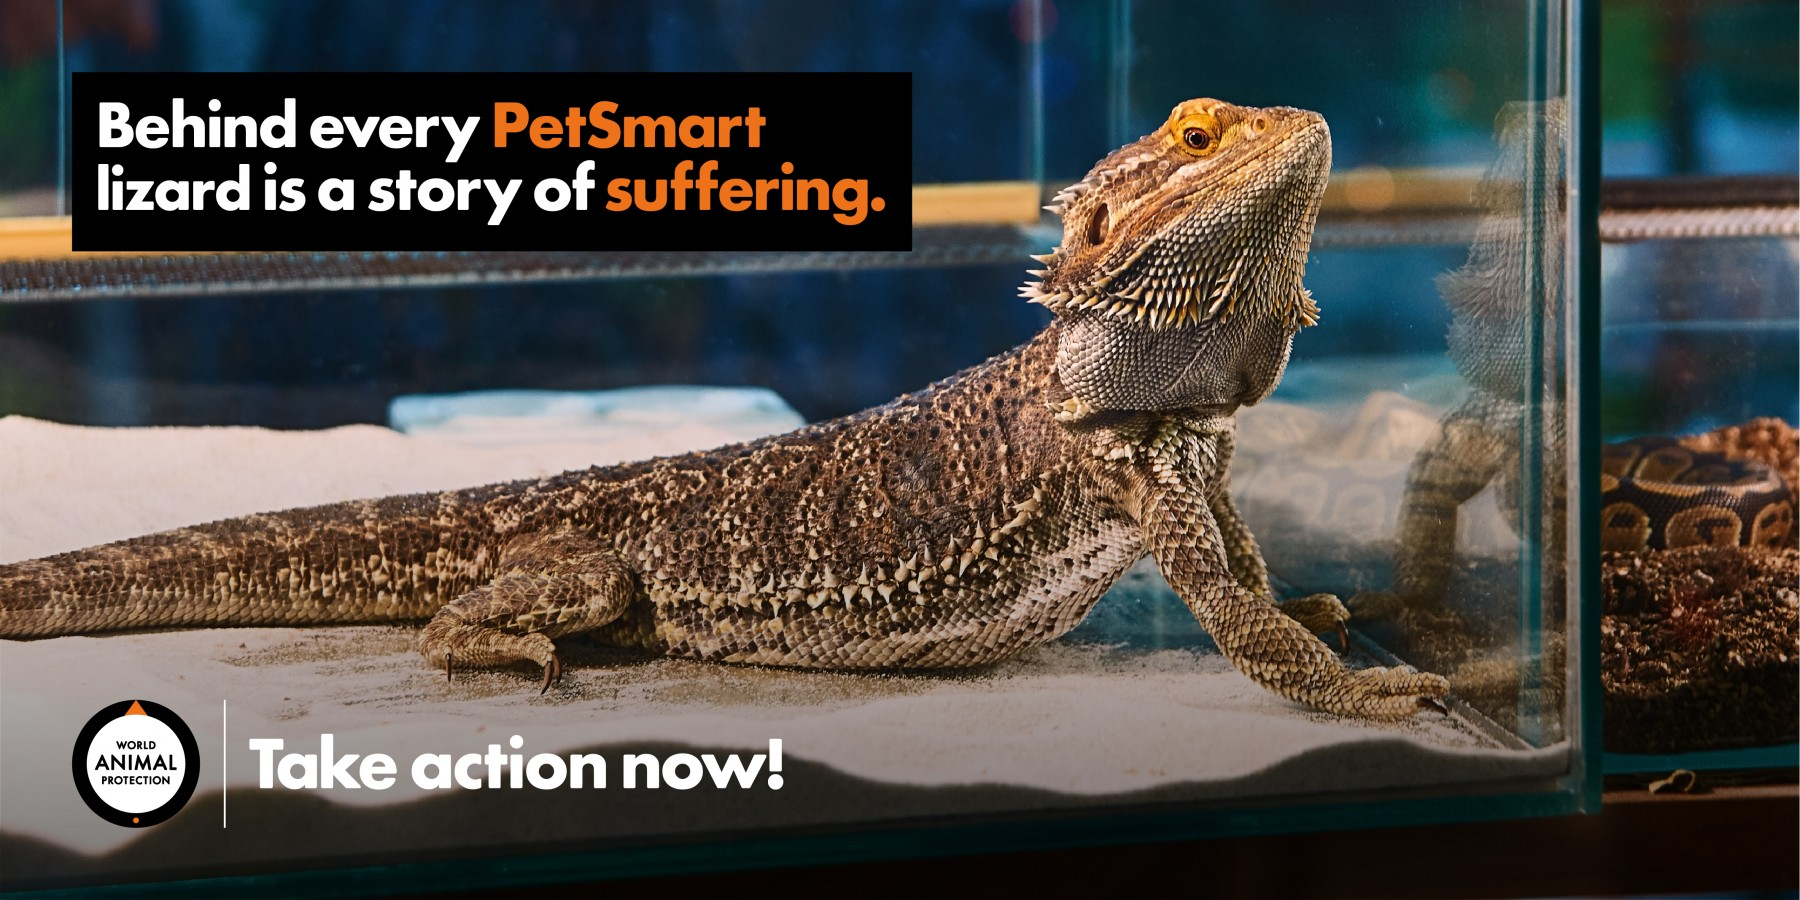 Lizards are suffering. PetSmart must act!